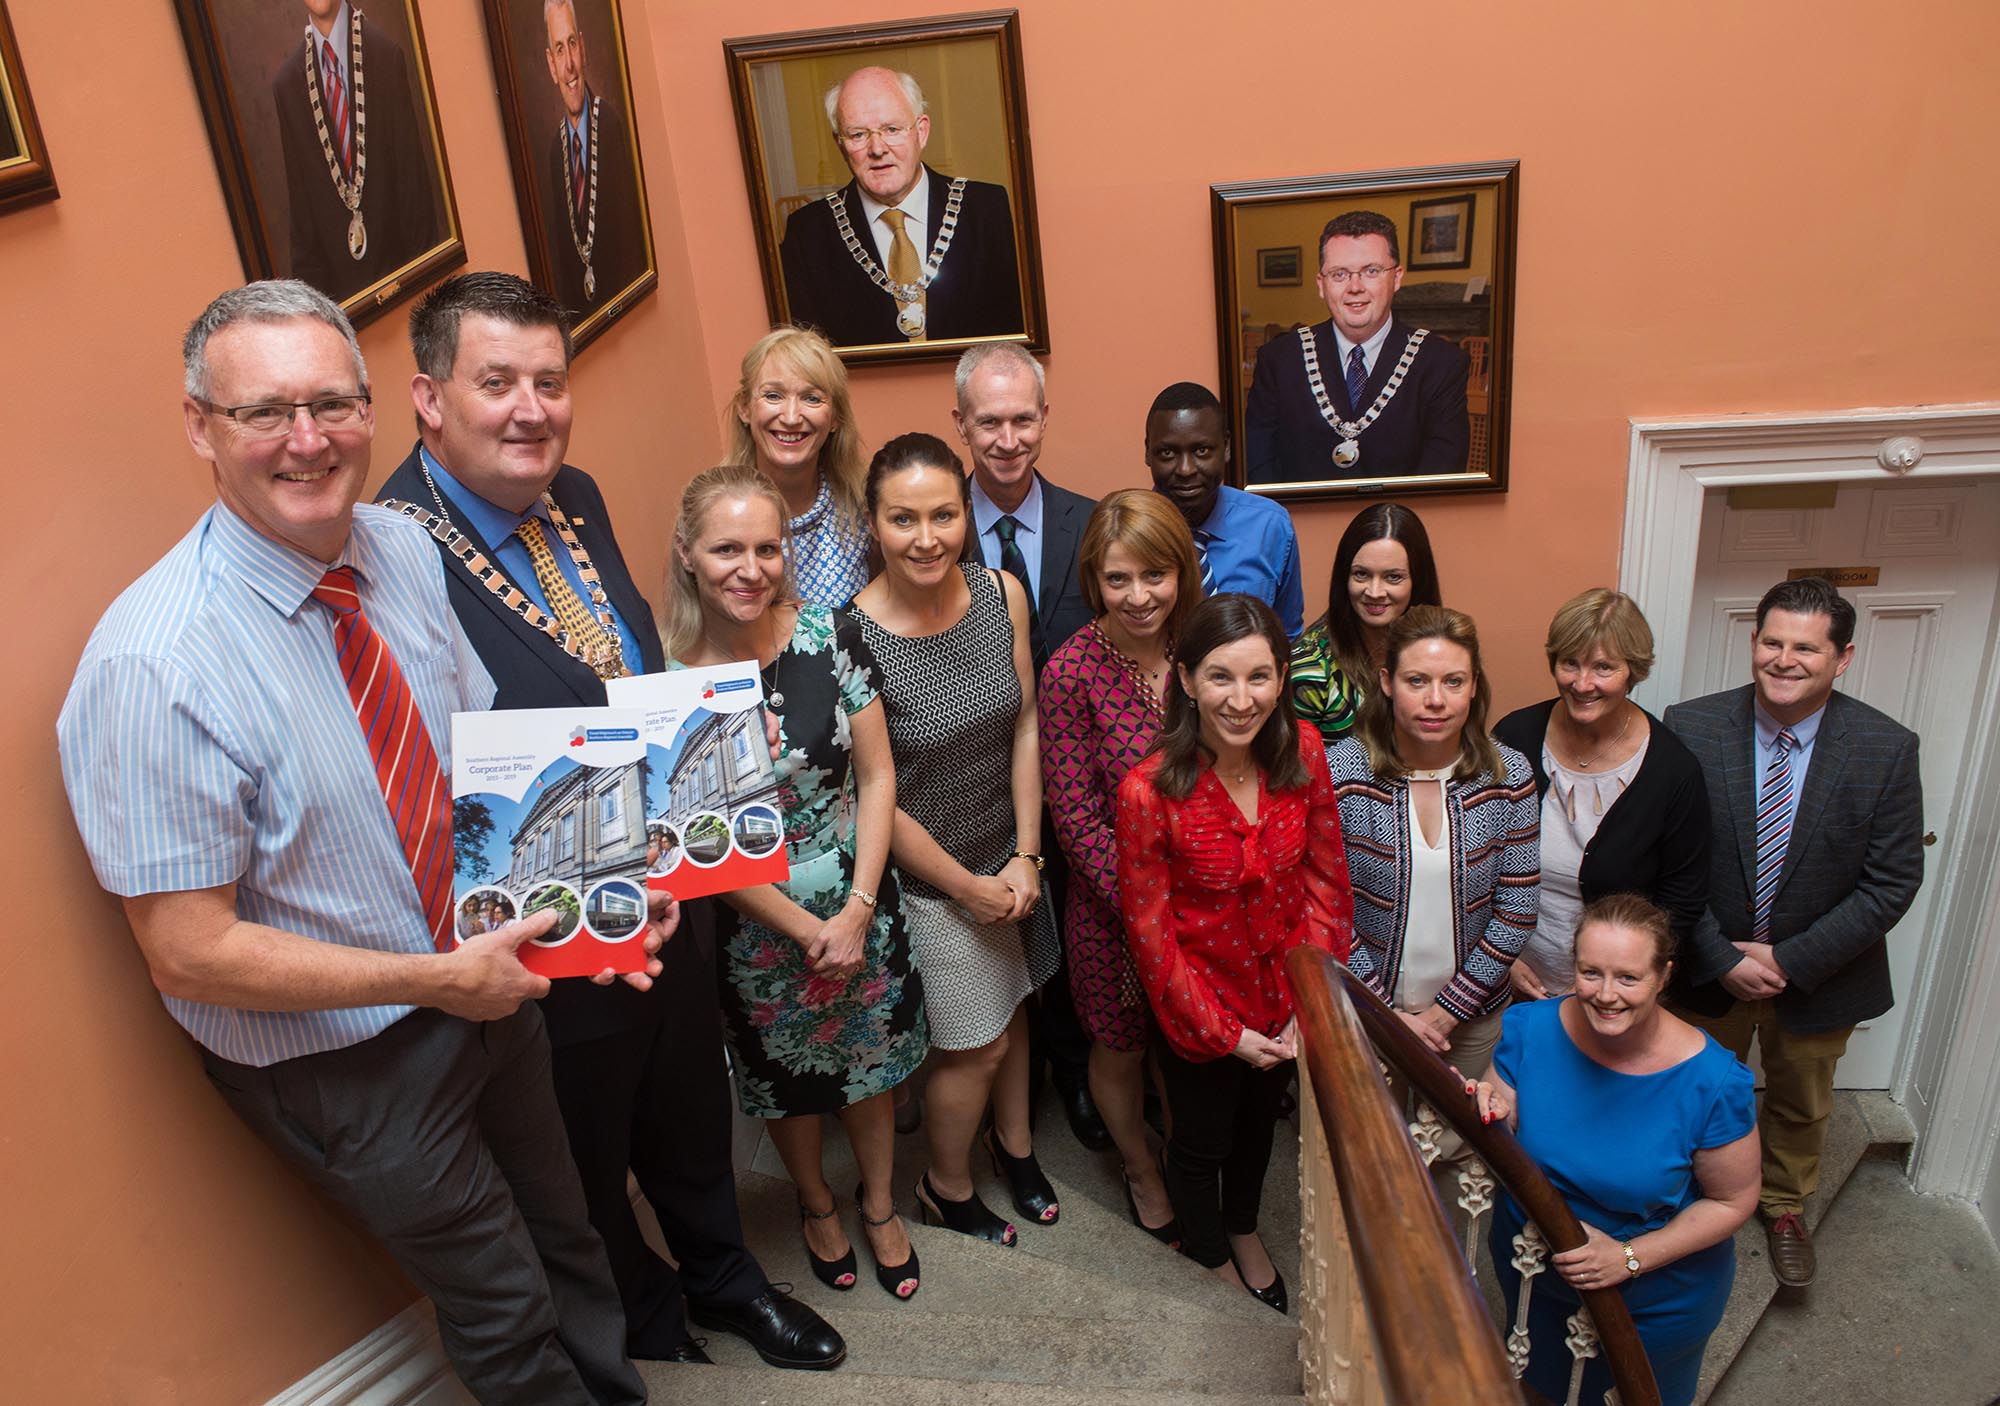 Staff and Cllr. Damien Geoghegan at the launch of the Assembly's Corporate Plan 2015-2019 in Assembly House on Friday 8th July